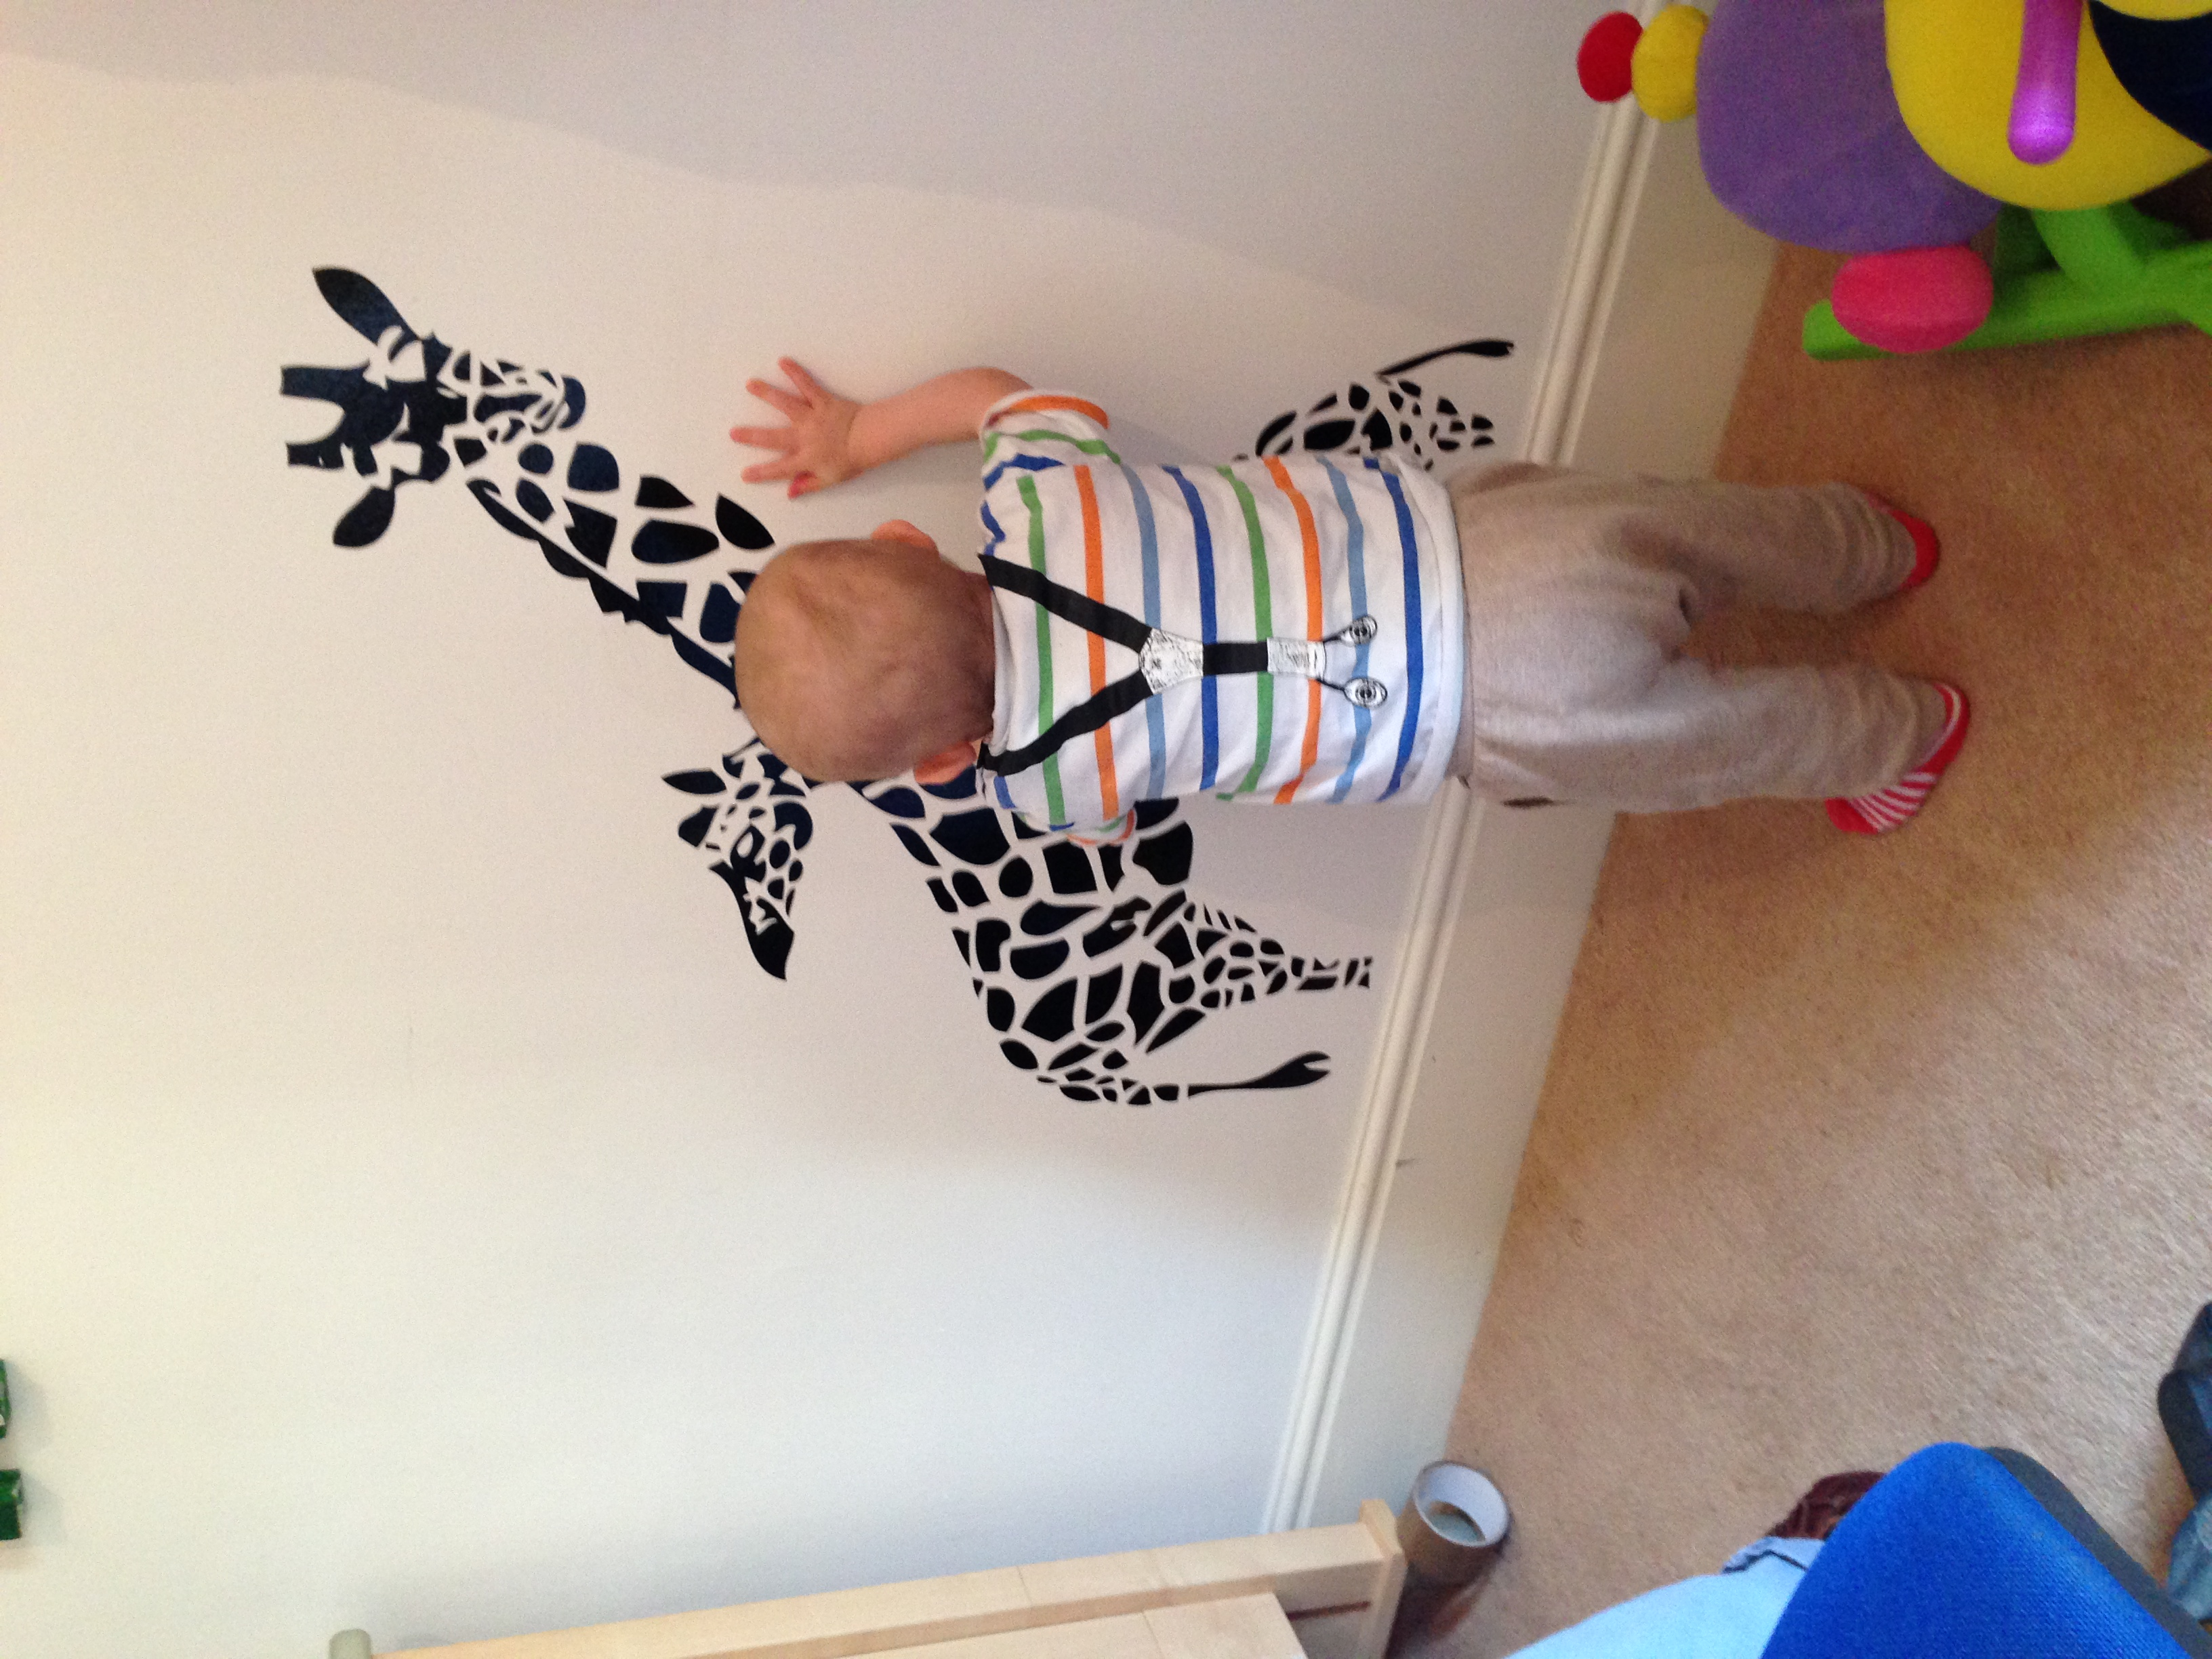 Wall Art Stickers UK Review and Giveaway!